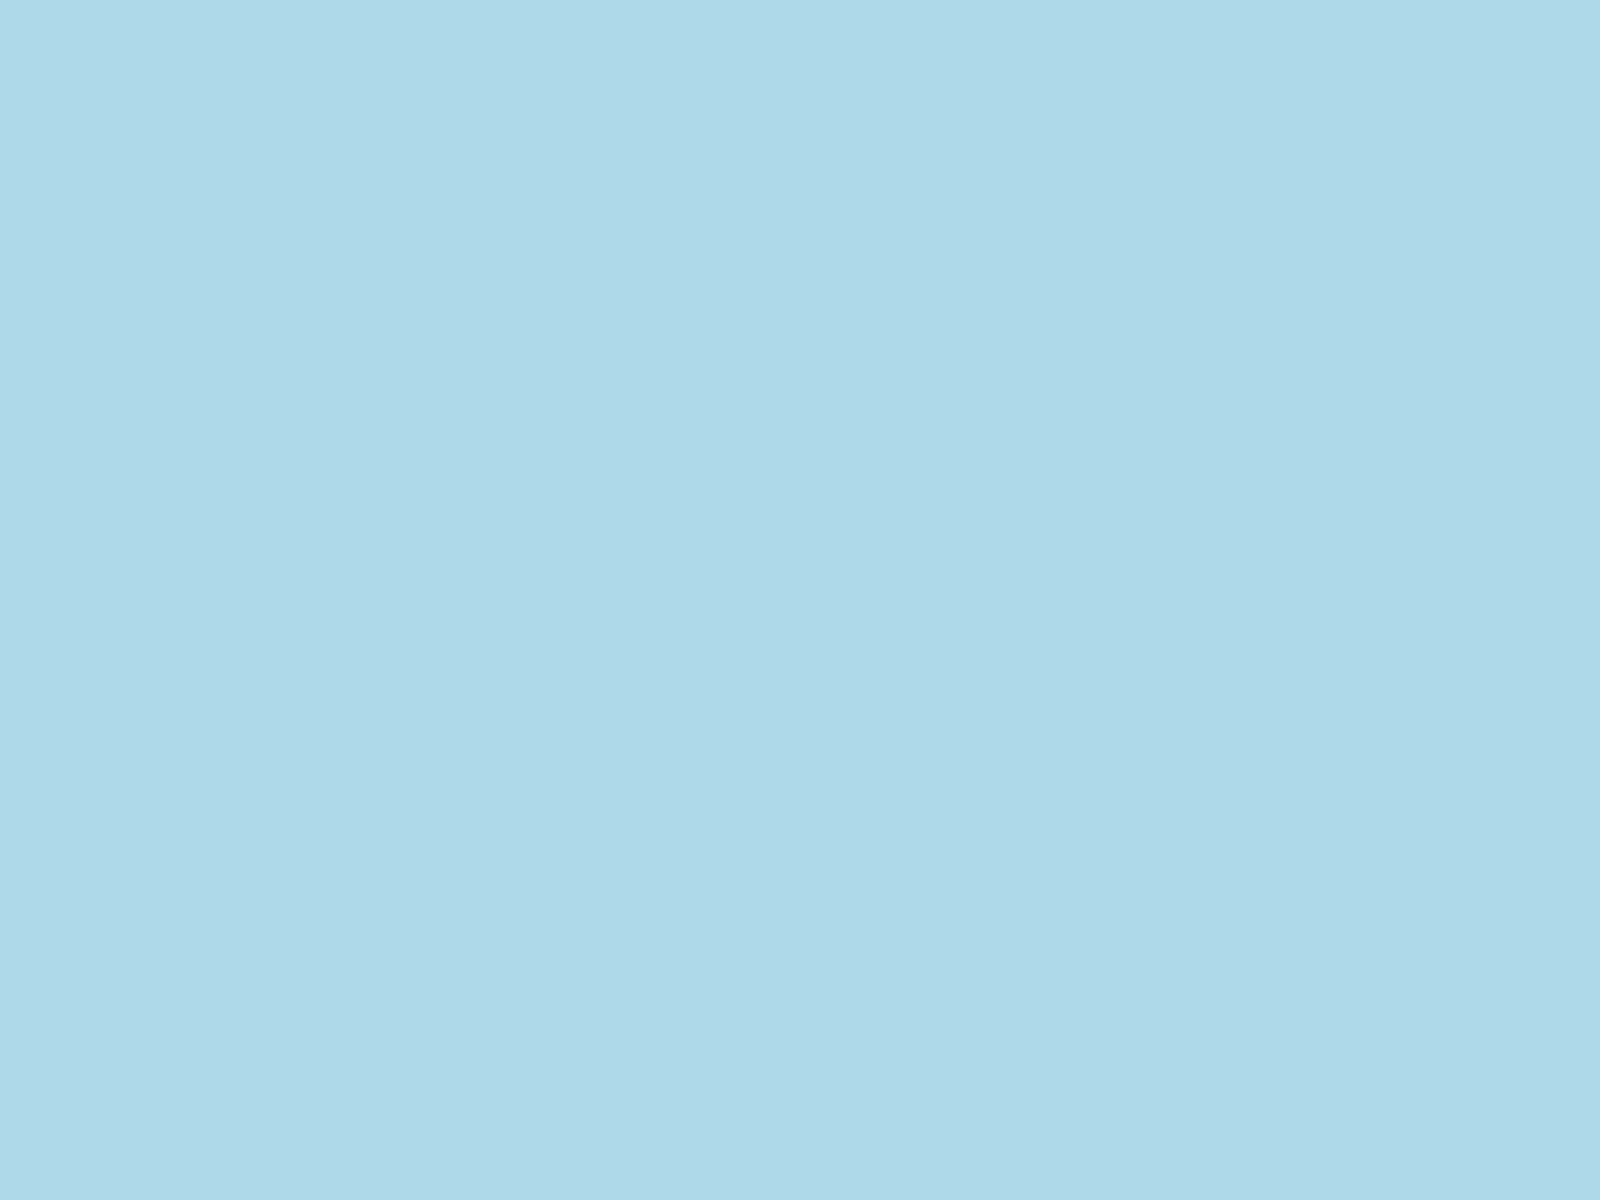 1600x1200 Light Blue Solid Color Background